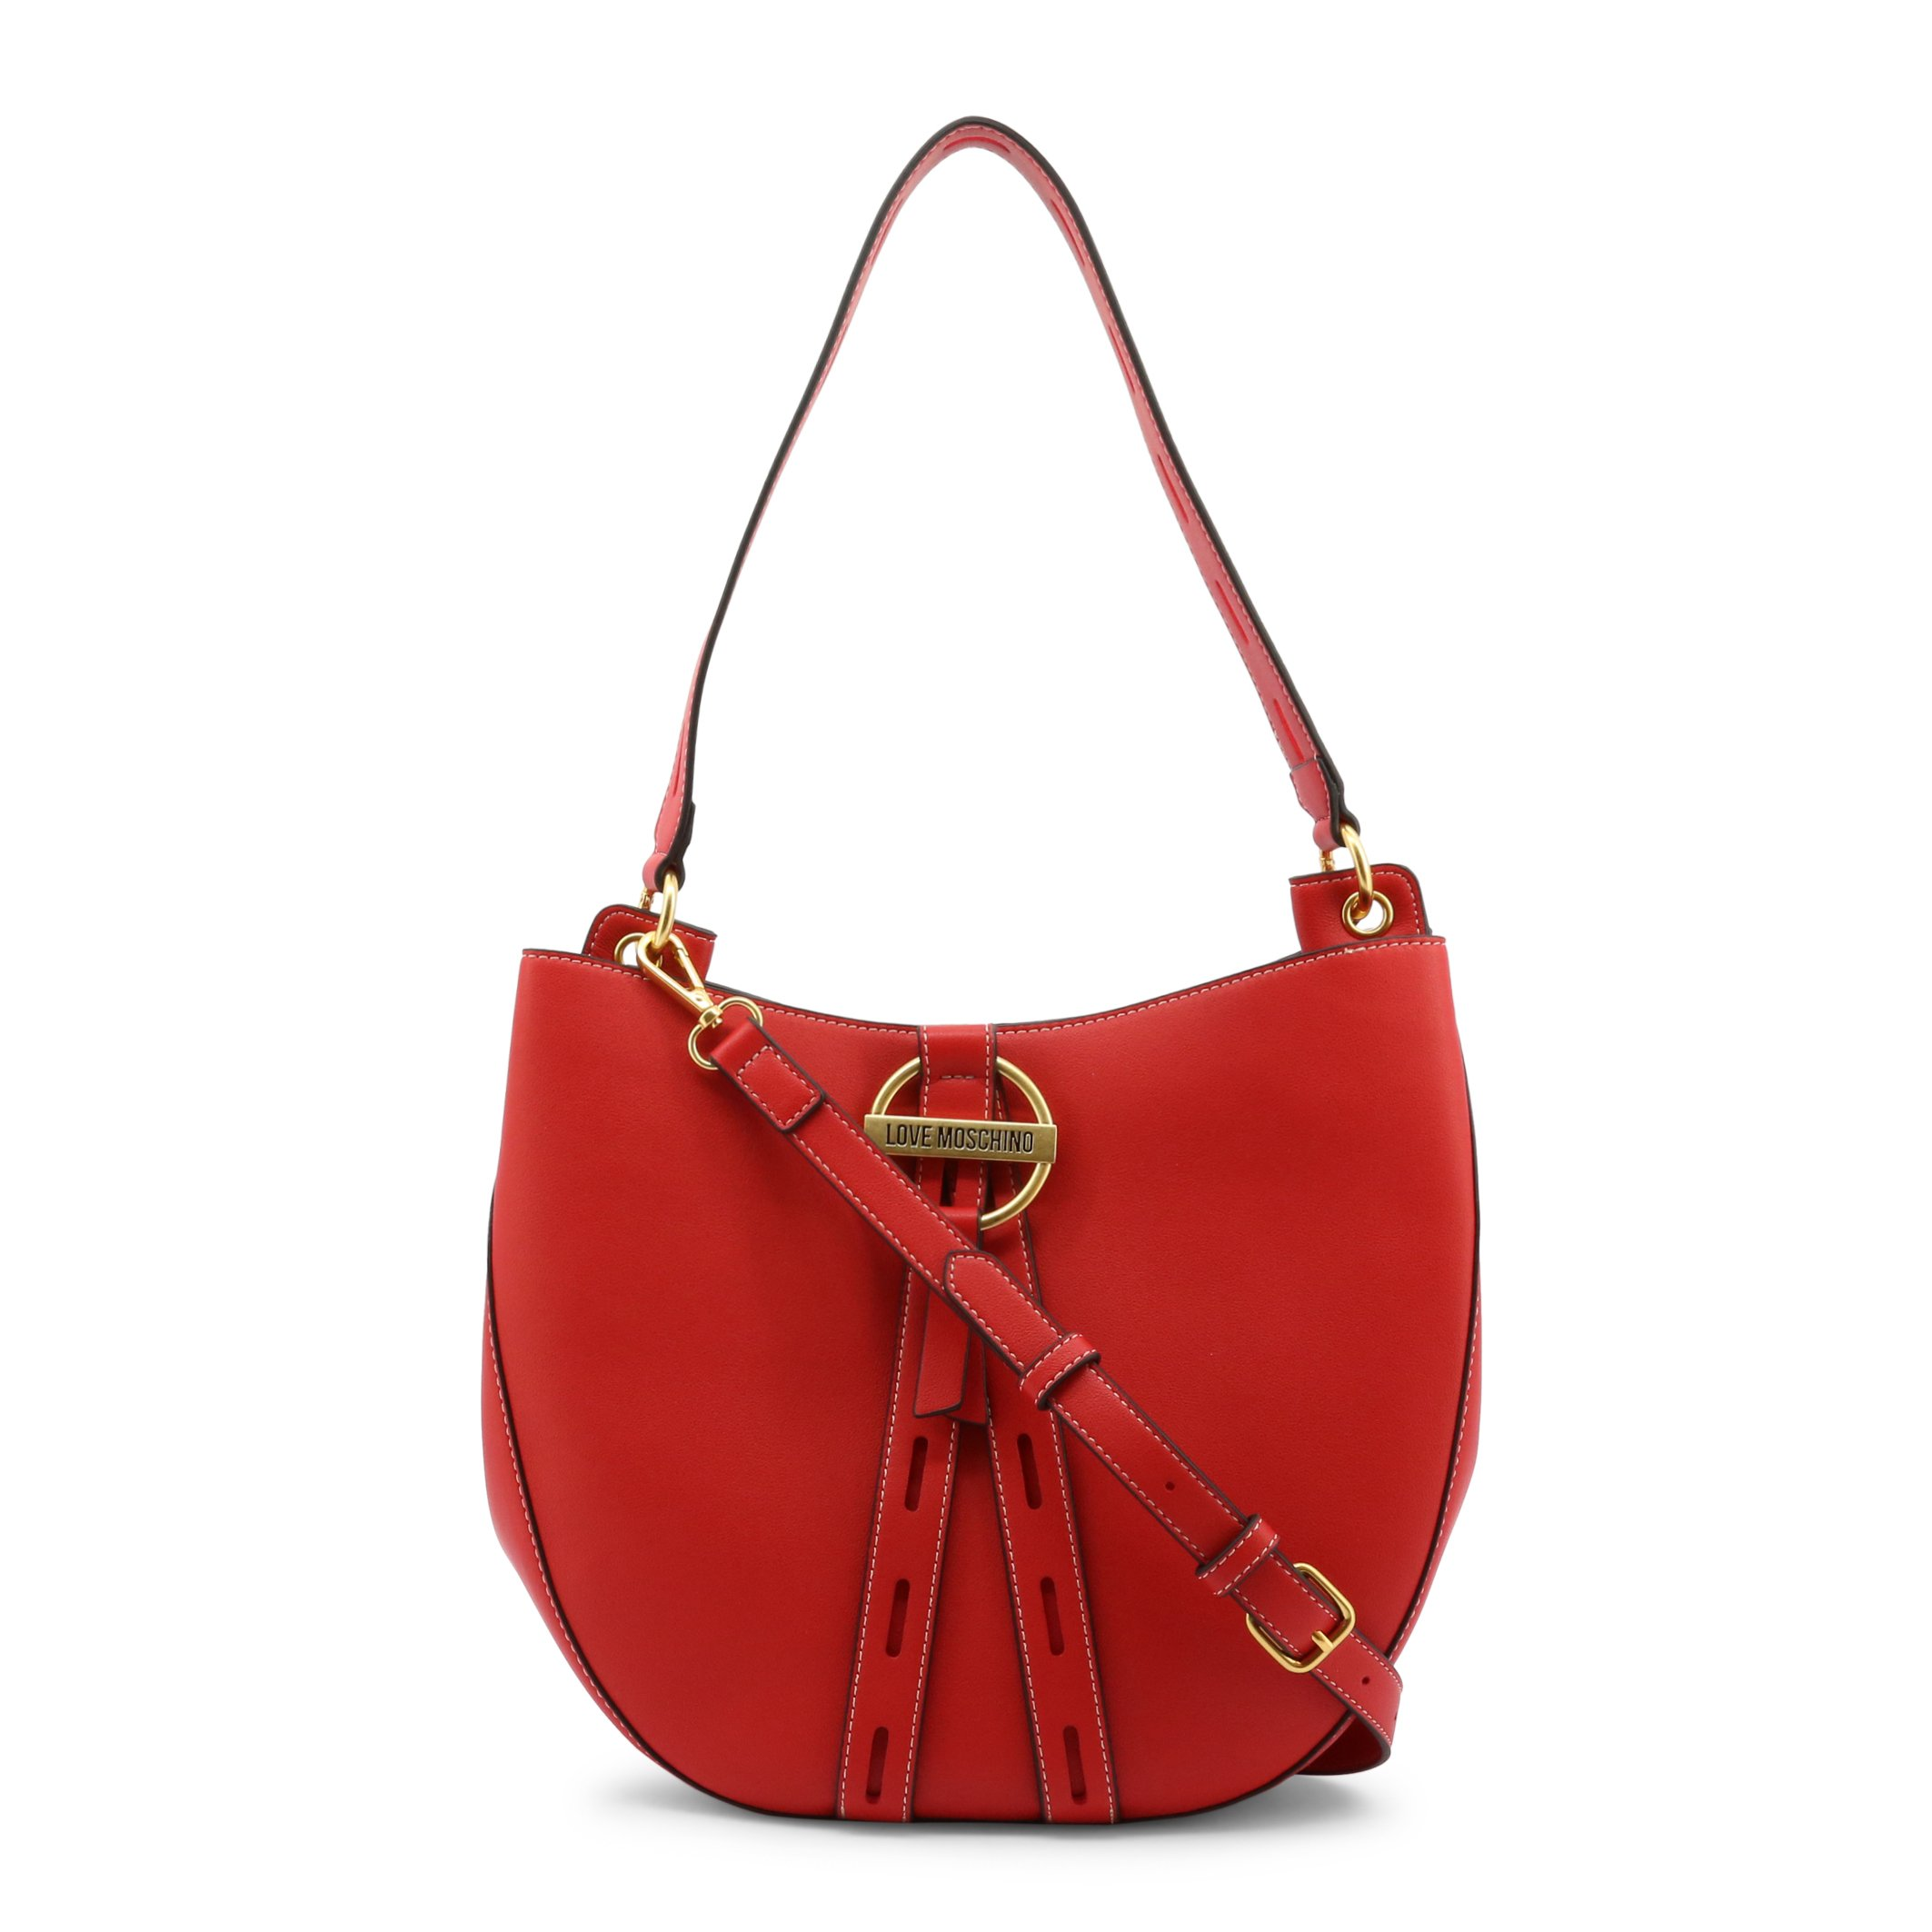 Love Moschino Women's Shoulder Bag Various Colours JC4207PP1DLK0 - red NOSIZE